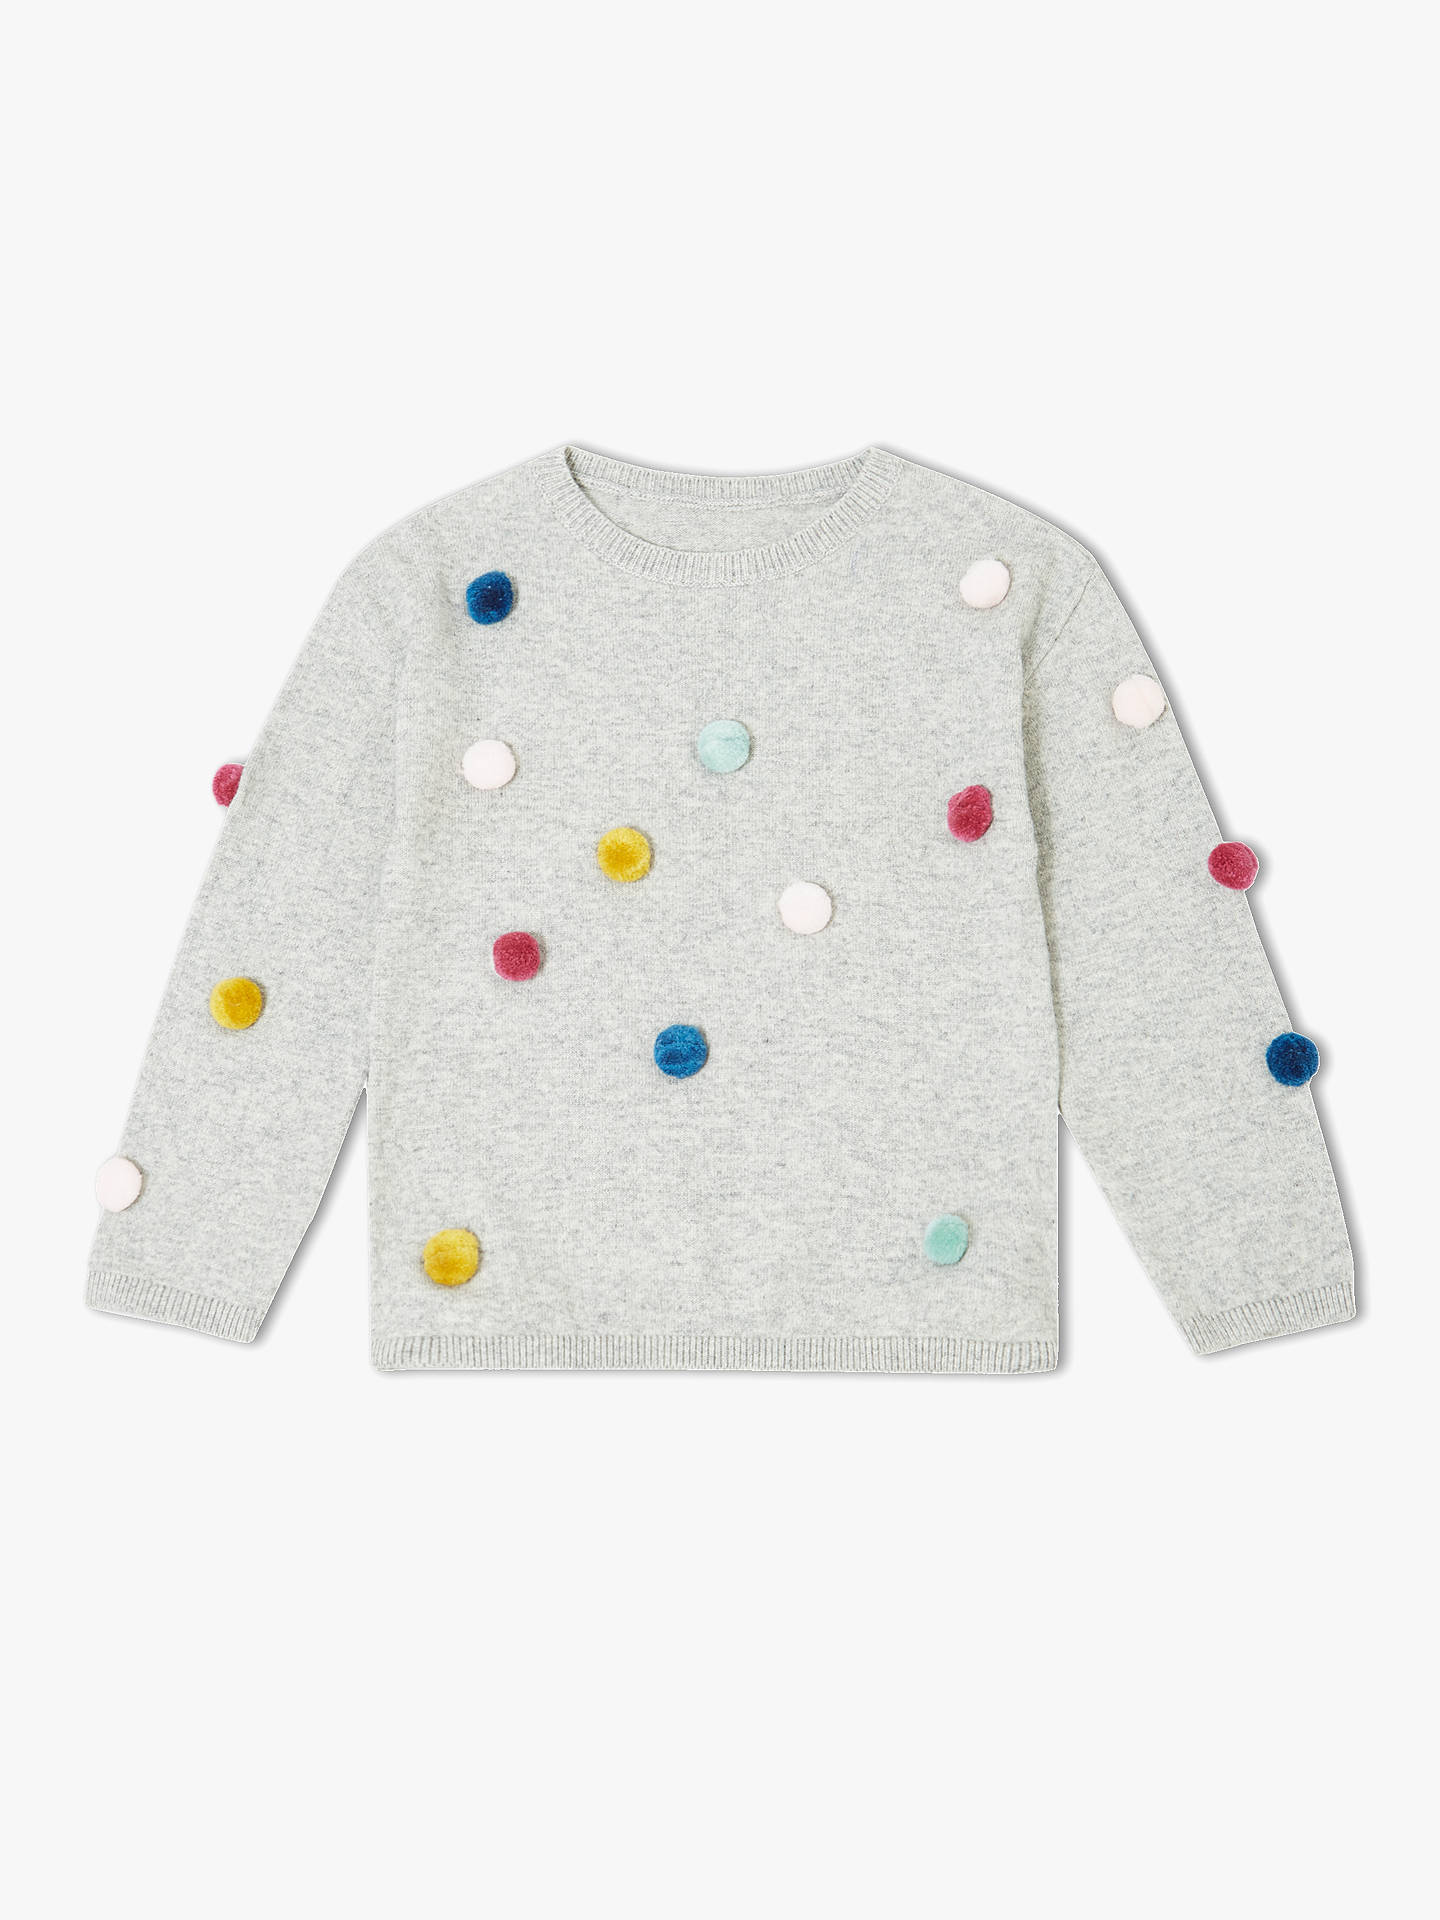 BuyJohn Lewis & Partners Girls' Pom Pom Jumper, Grey, 4 years Online at johnlewis.com